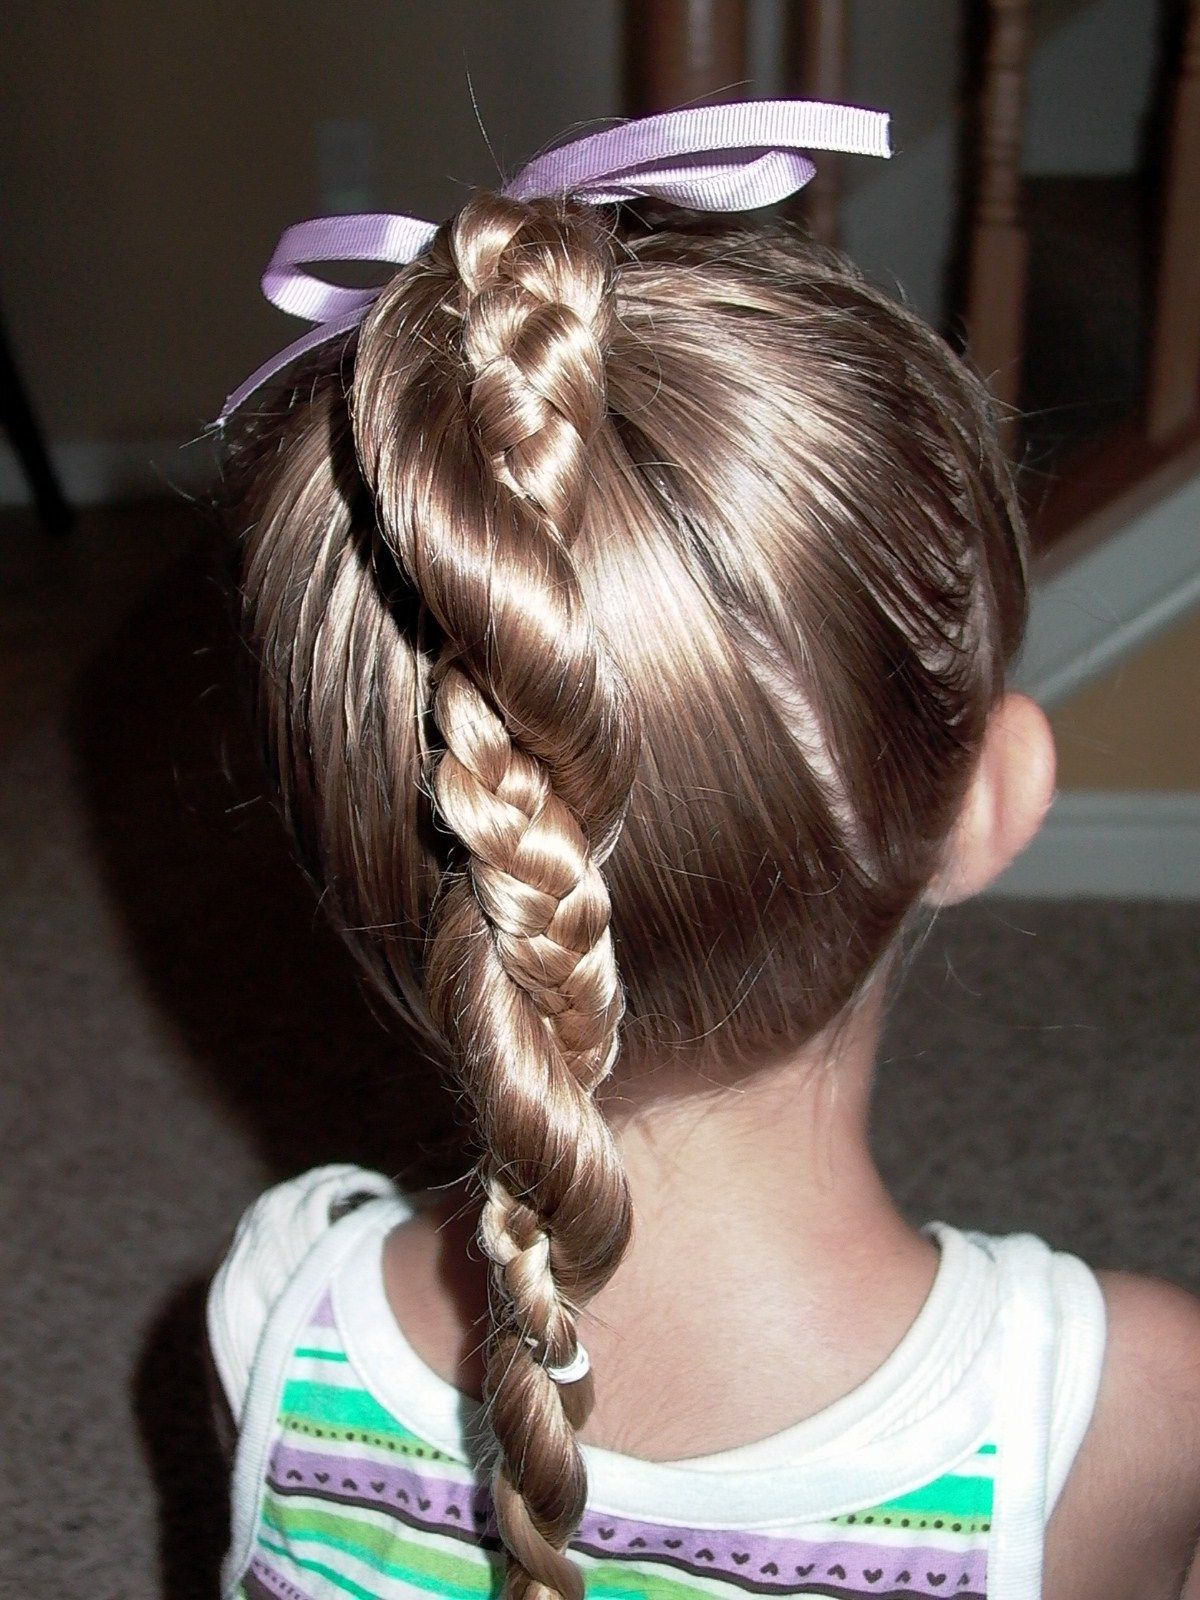 Easy Hairstyles For Little Girls With Long Hair Photo 4 Little Girl Hairstyles Braided Hairstyles Easy Girls Hairstyles Easy